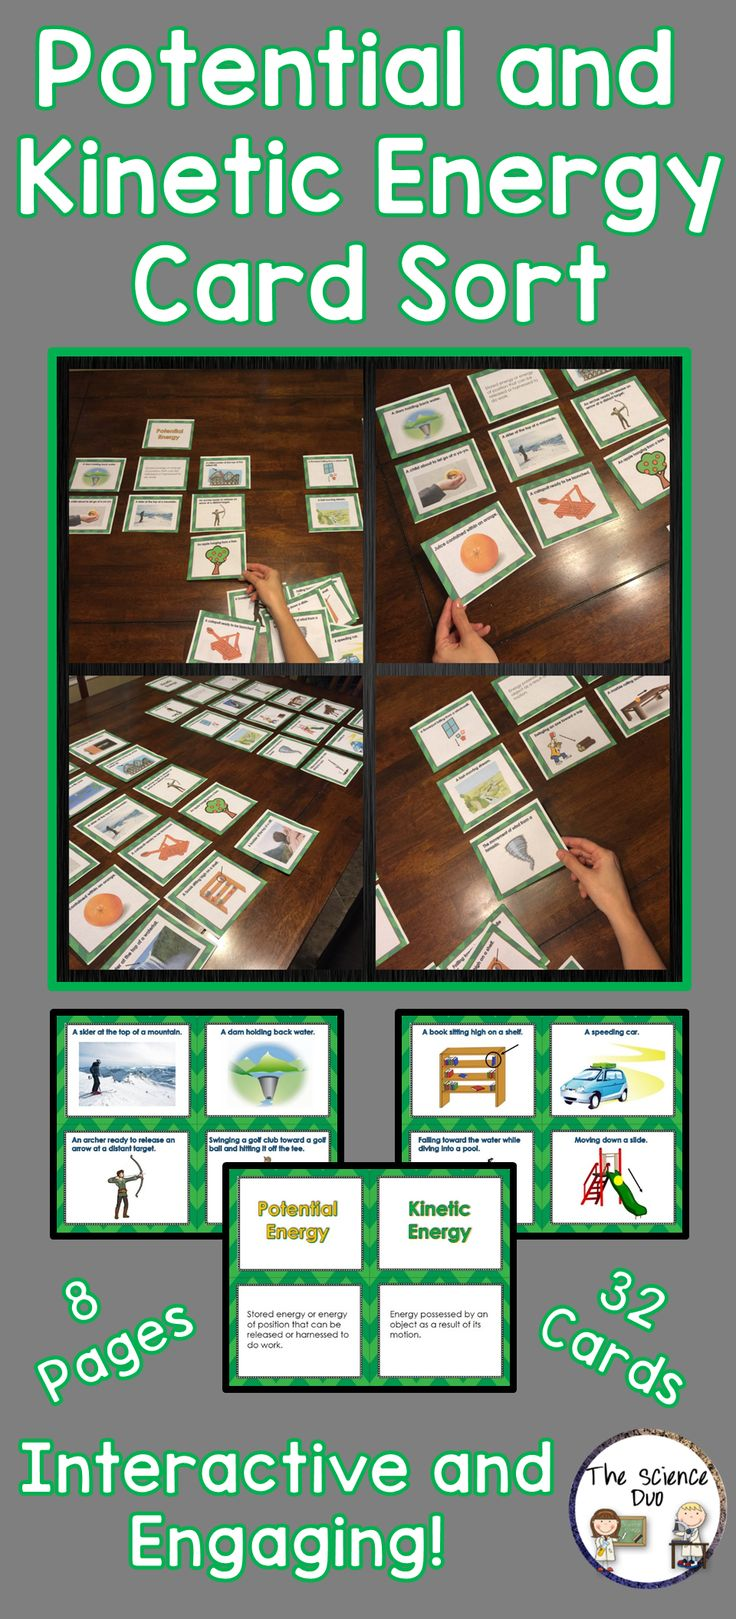 Potential and Kinetic Energy Card Sort.  This hands-on activity will allow your students to differentiate between Potential and Kinetic Energy with many different examples.